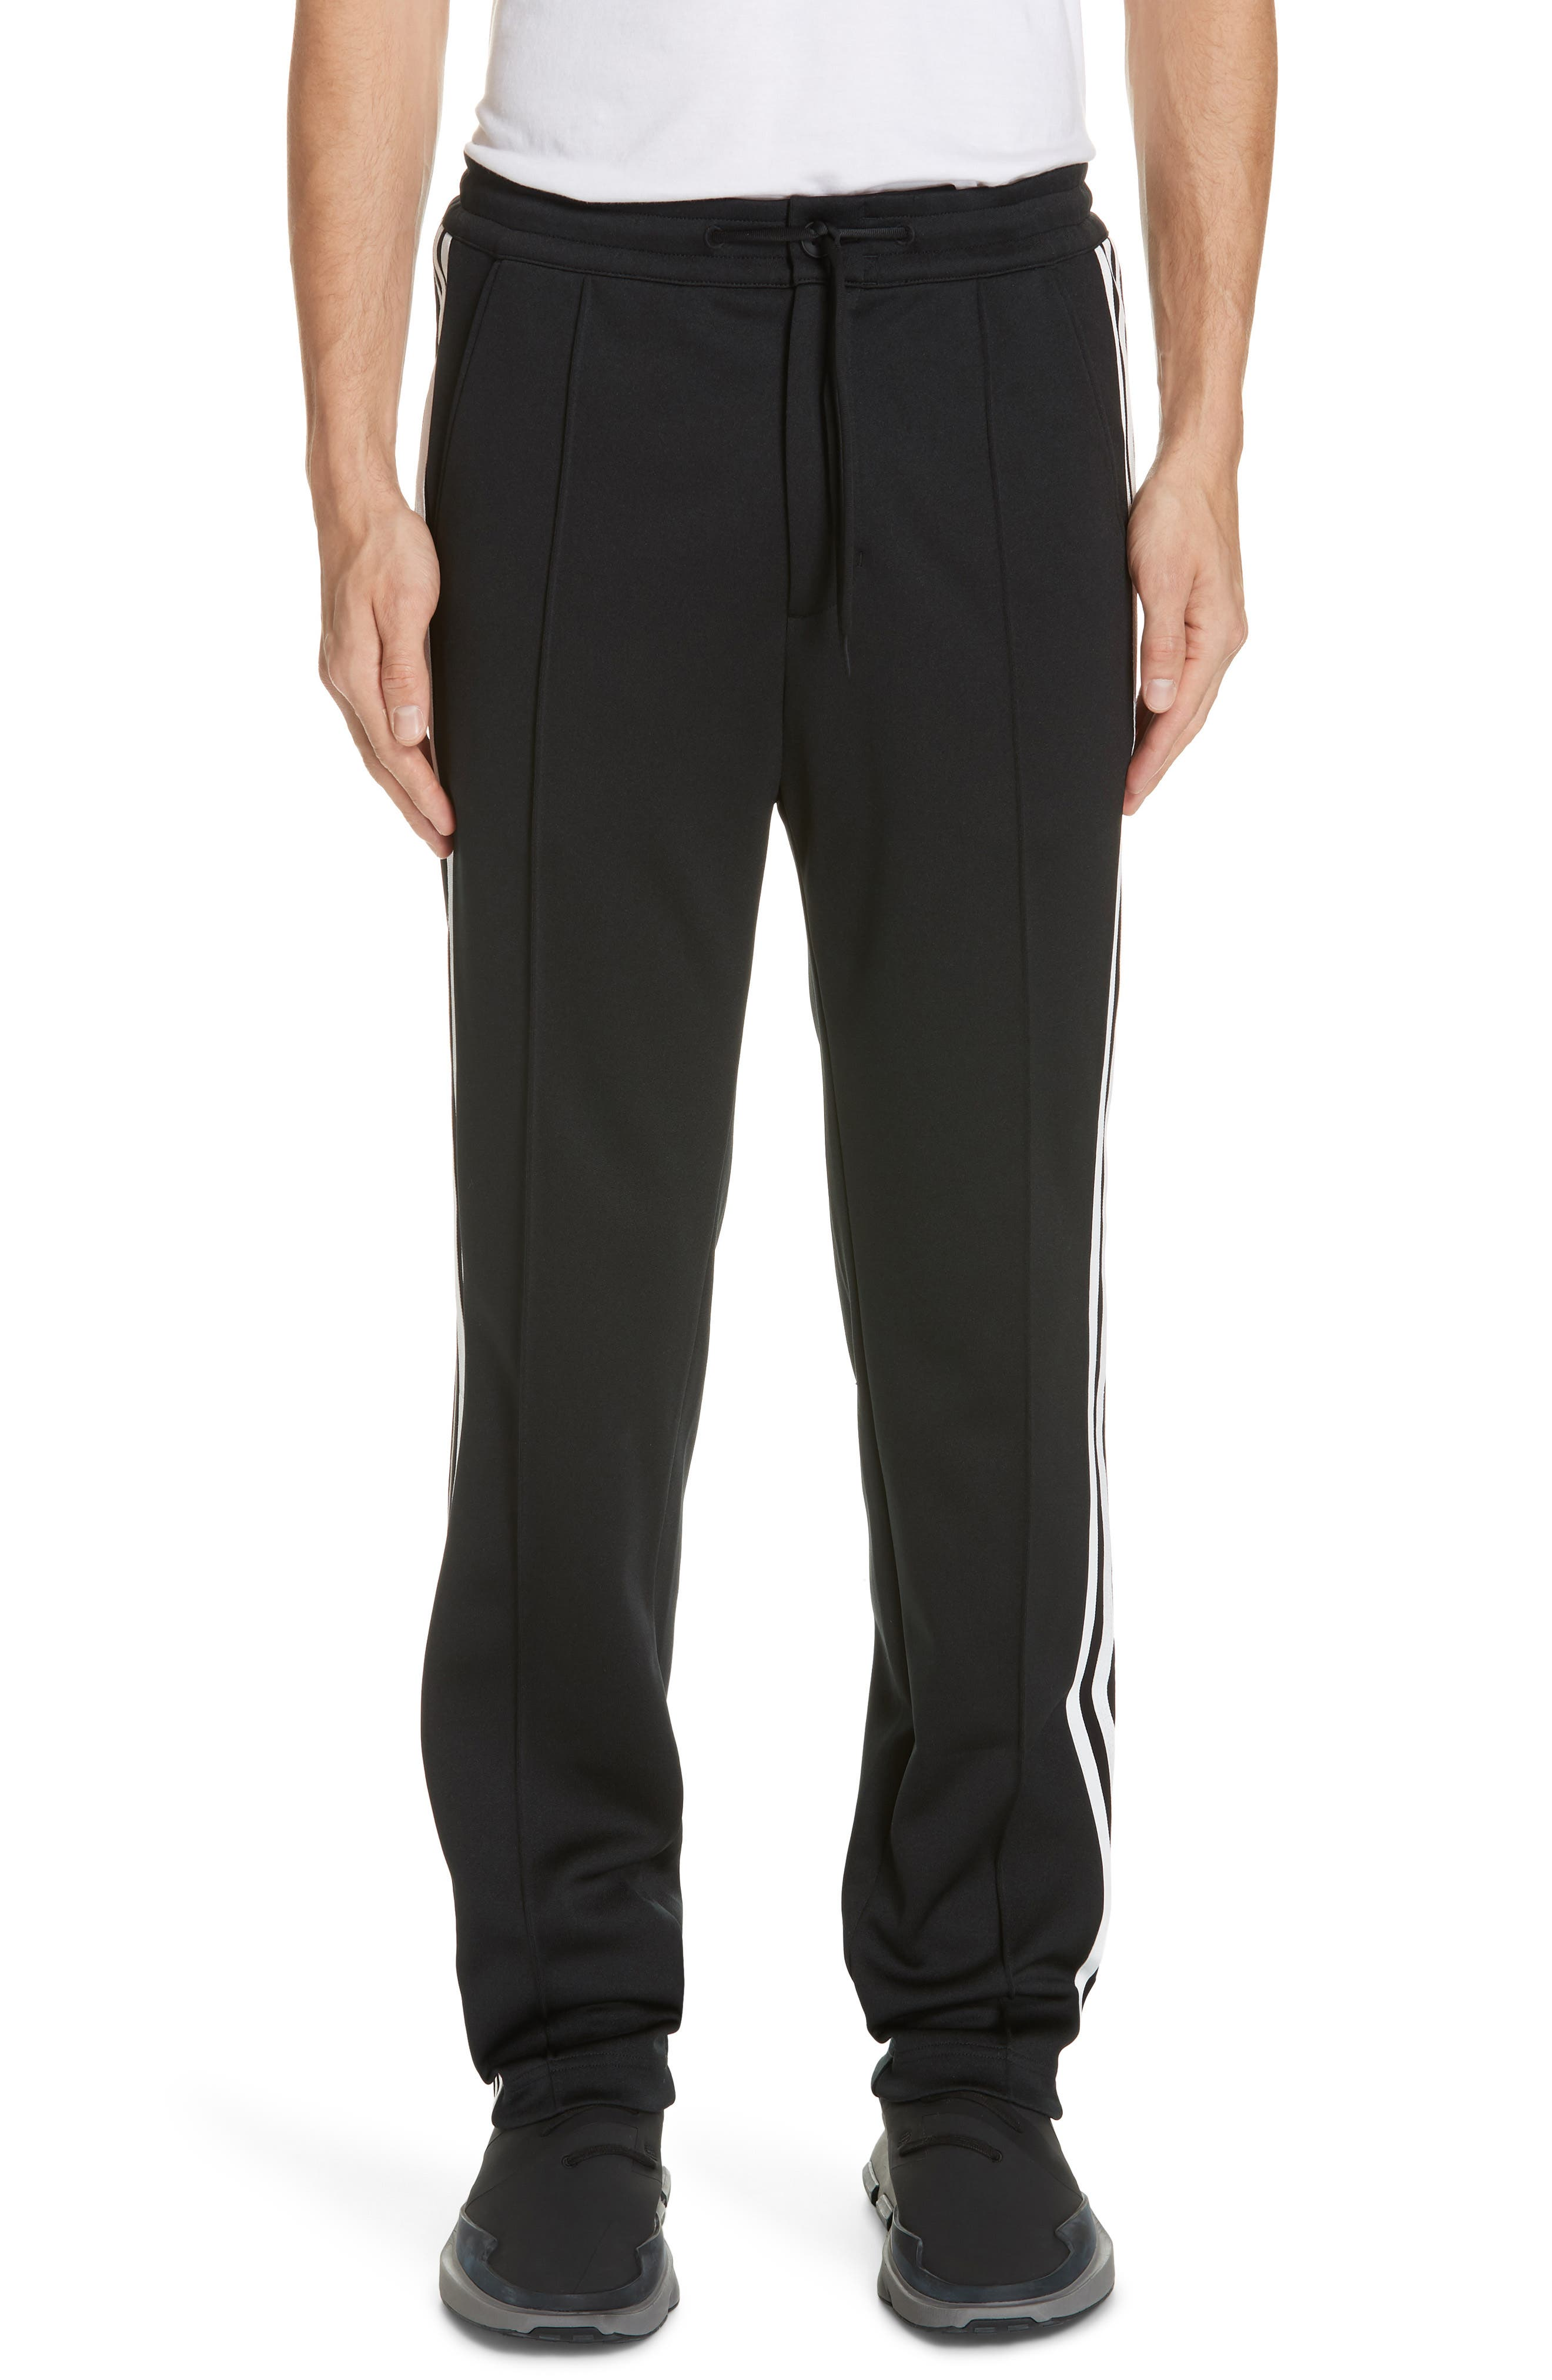 x adidas 3-Stripes Track Pants, Main, color, BLACK